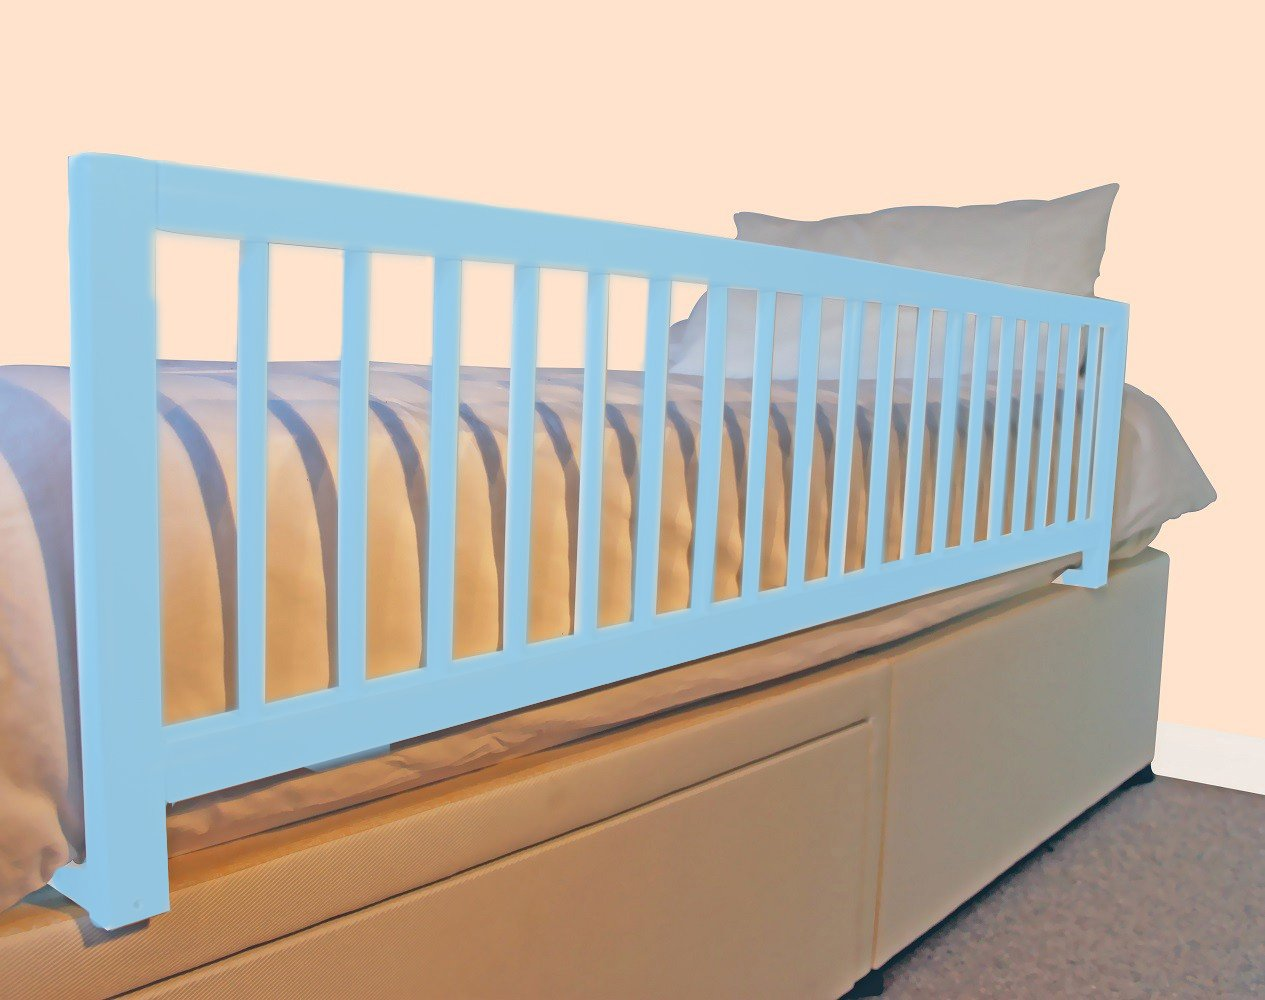 Safetots - Paracolpi per letto, extra largo, in legno, colore: blu Safetots Limited ST-EWWBRB